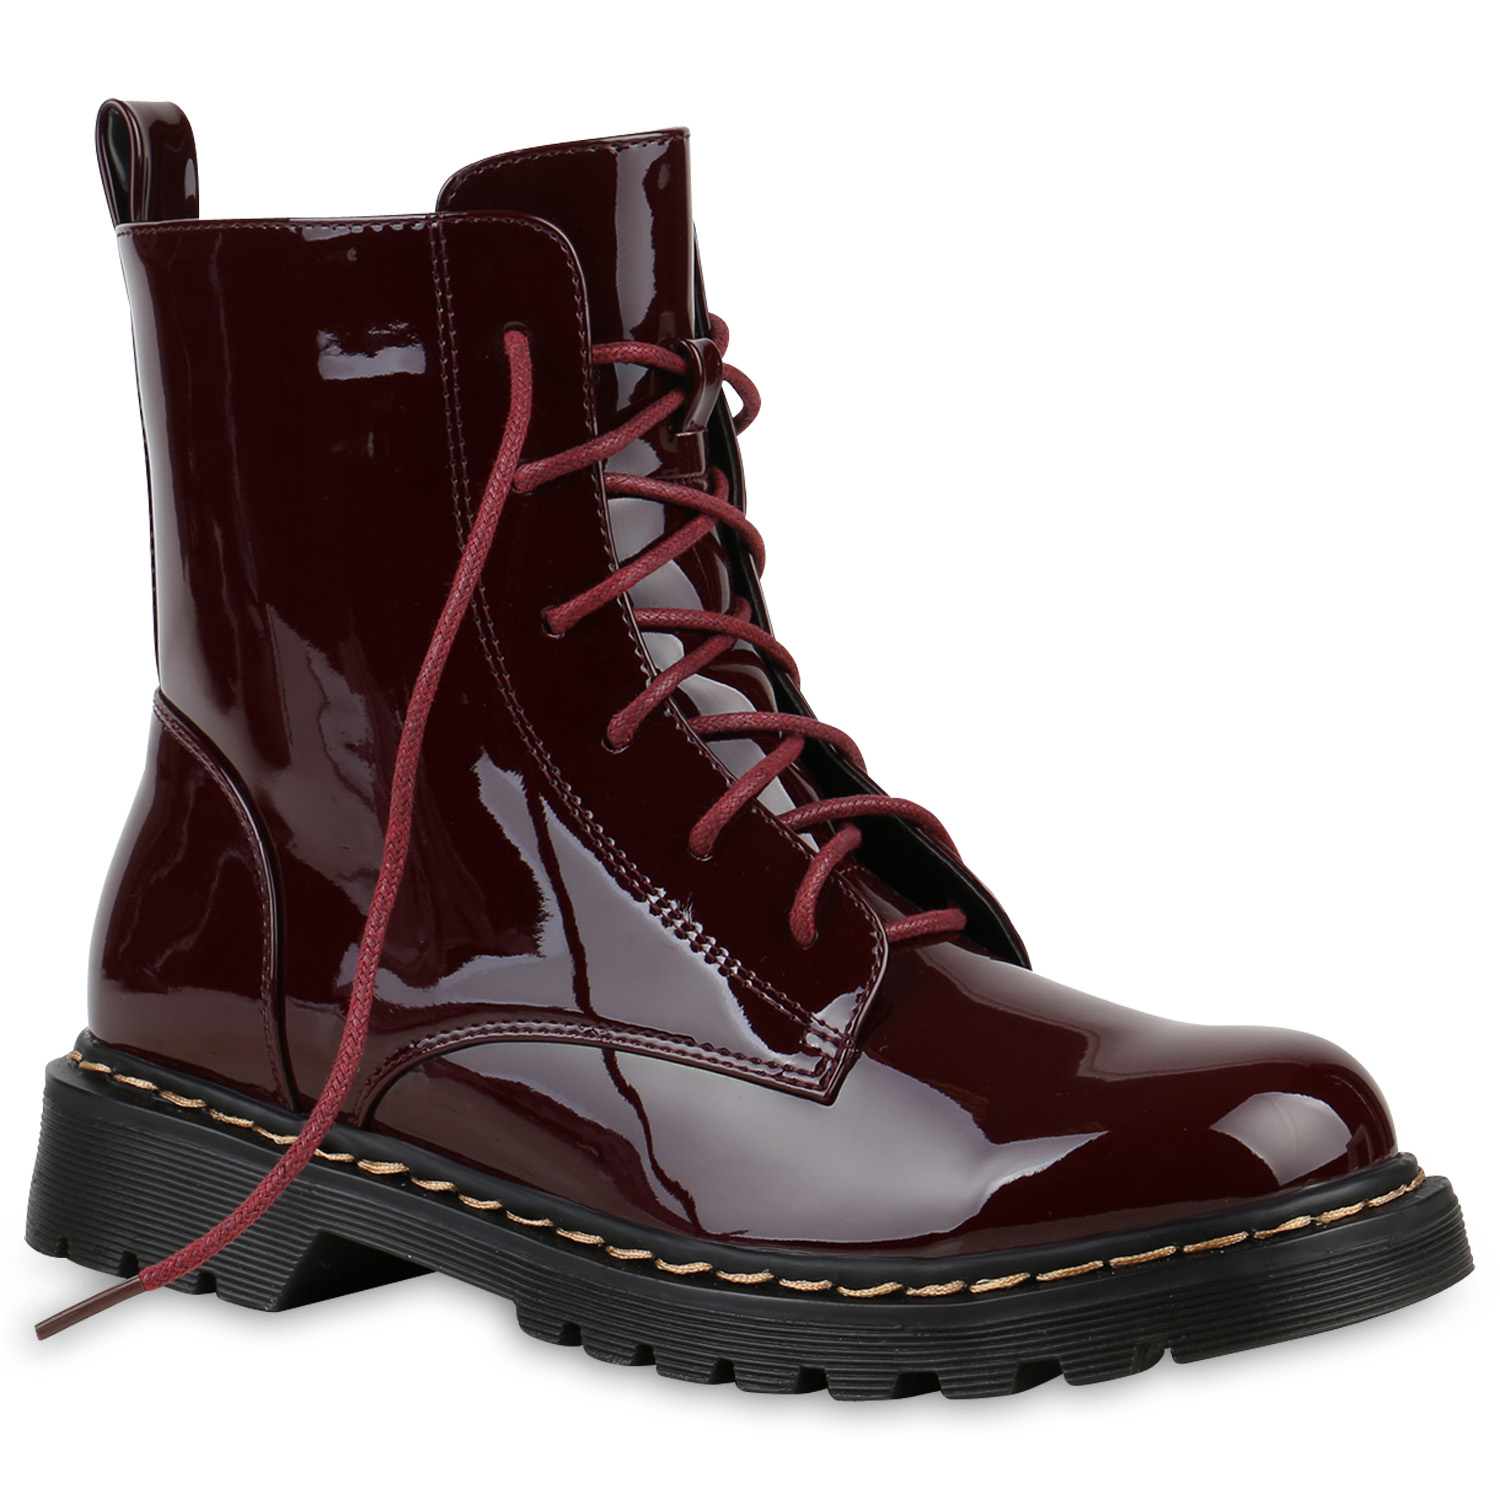 gef tterte damen worker boots lack grunge punk stiefeletten 812411 top ebay. Black Bedroom Furniture Sets. Home Design Ideas